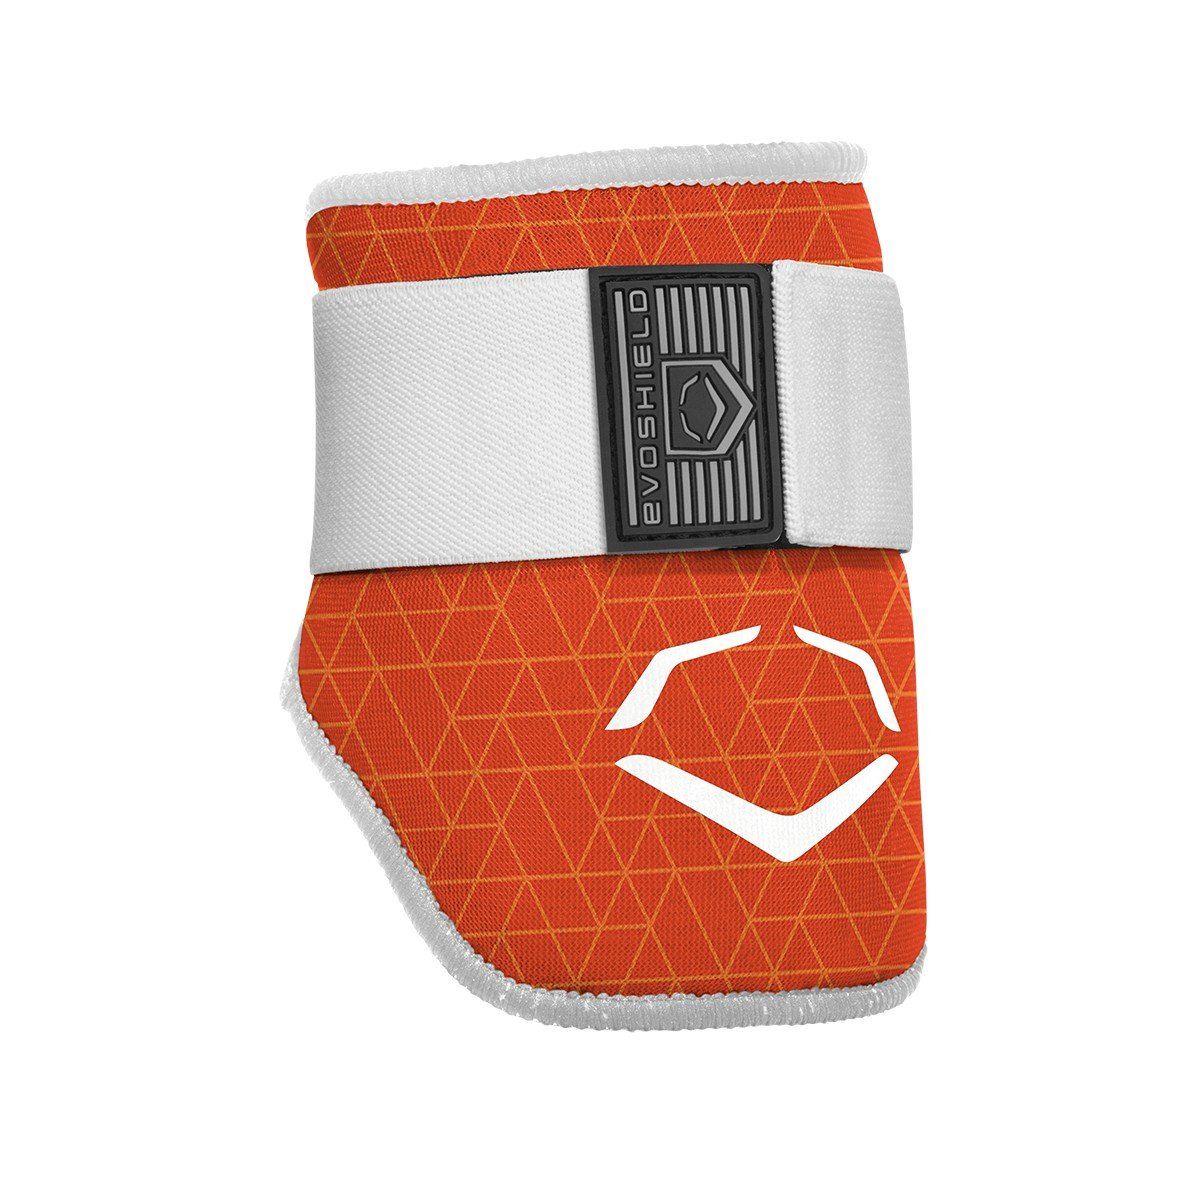 EvoShield EvoCharge Batter's Elbow Guard - Adult, Orange